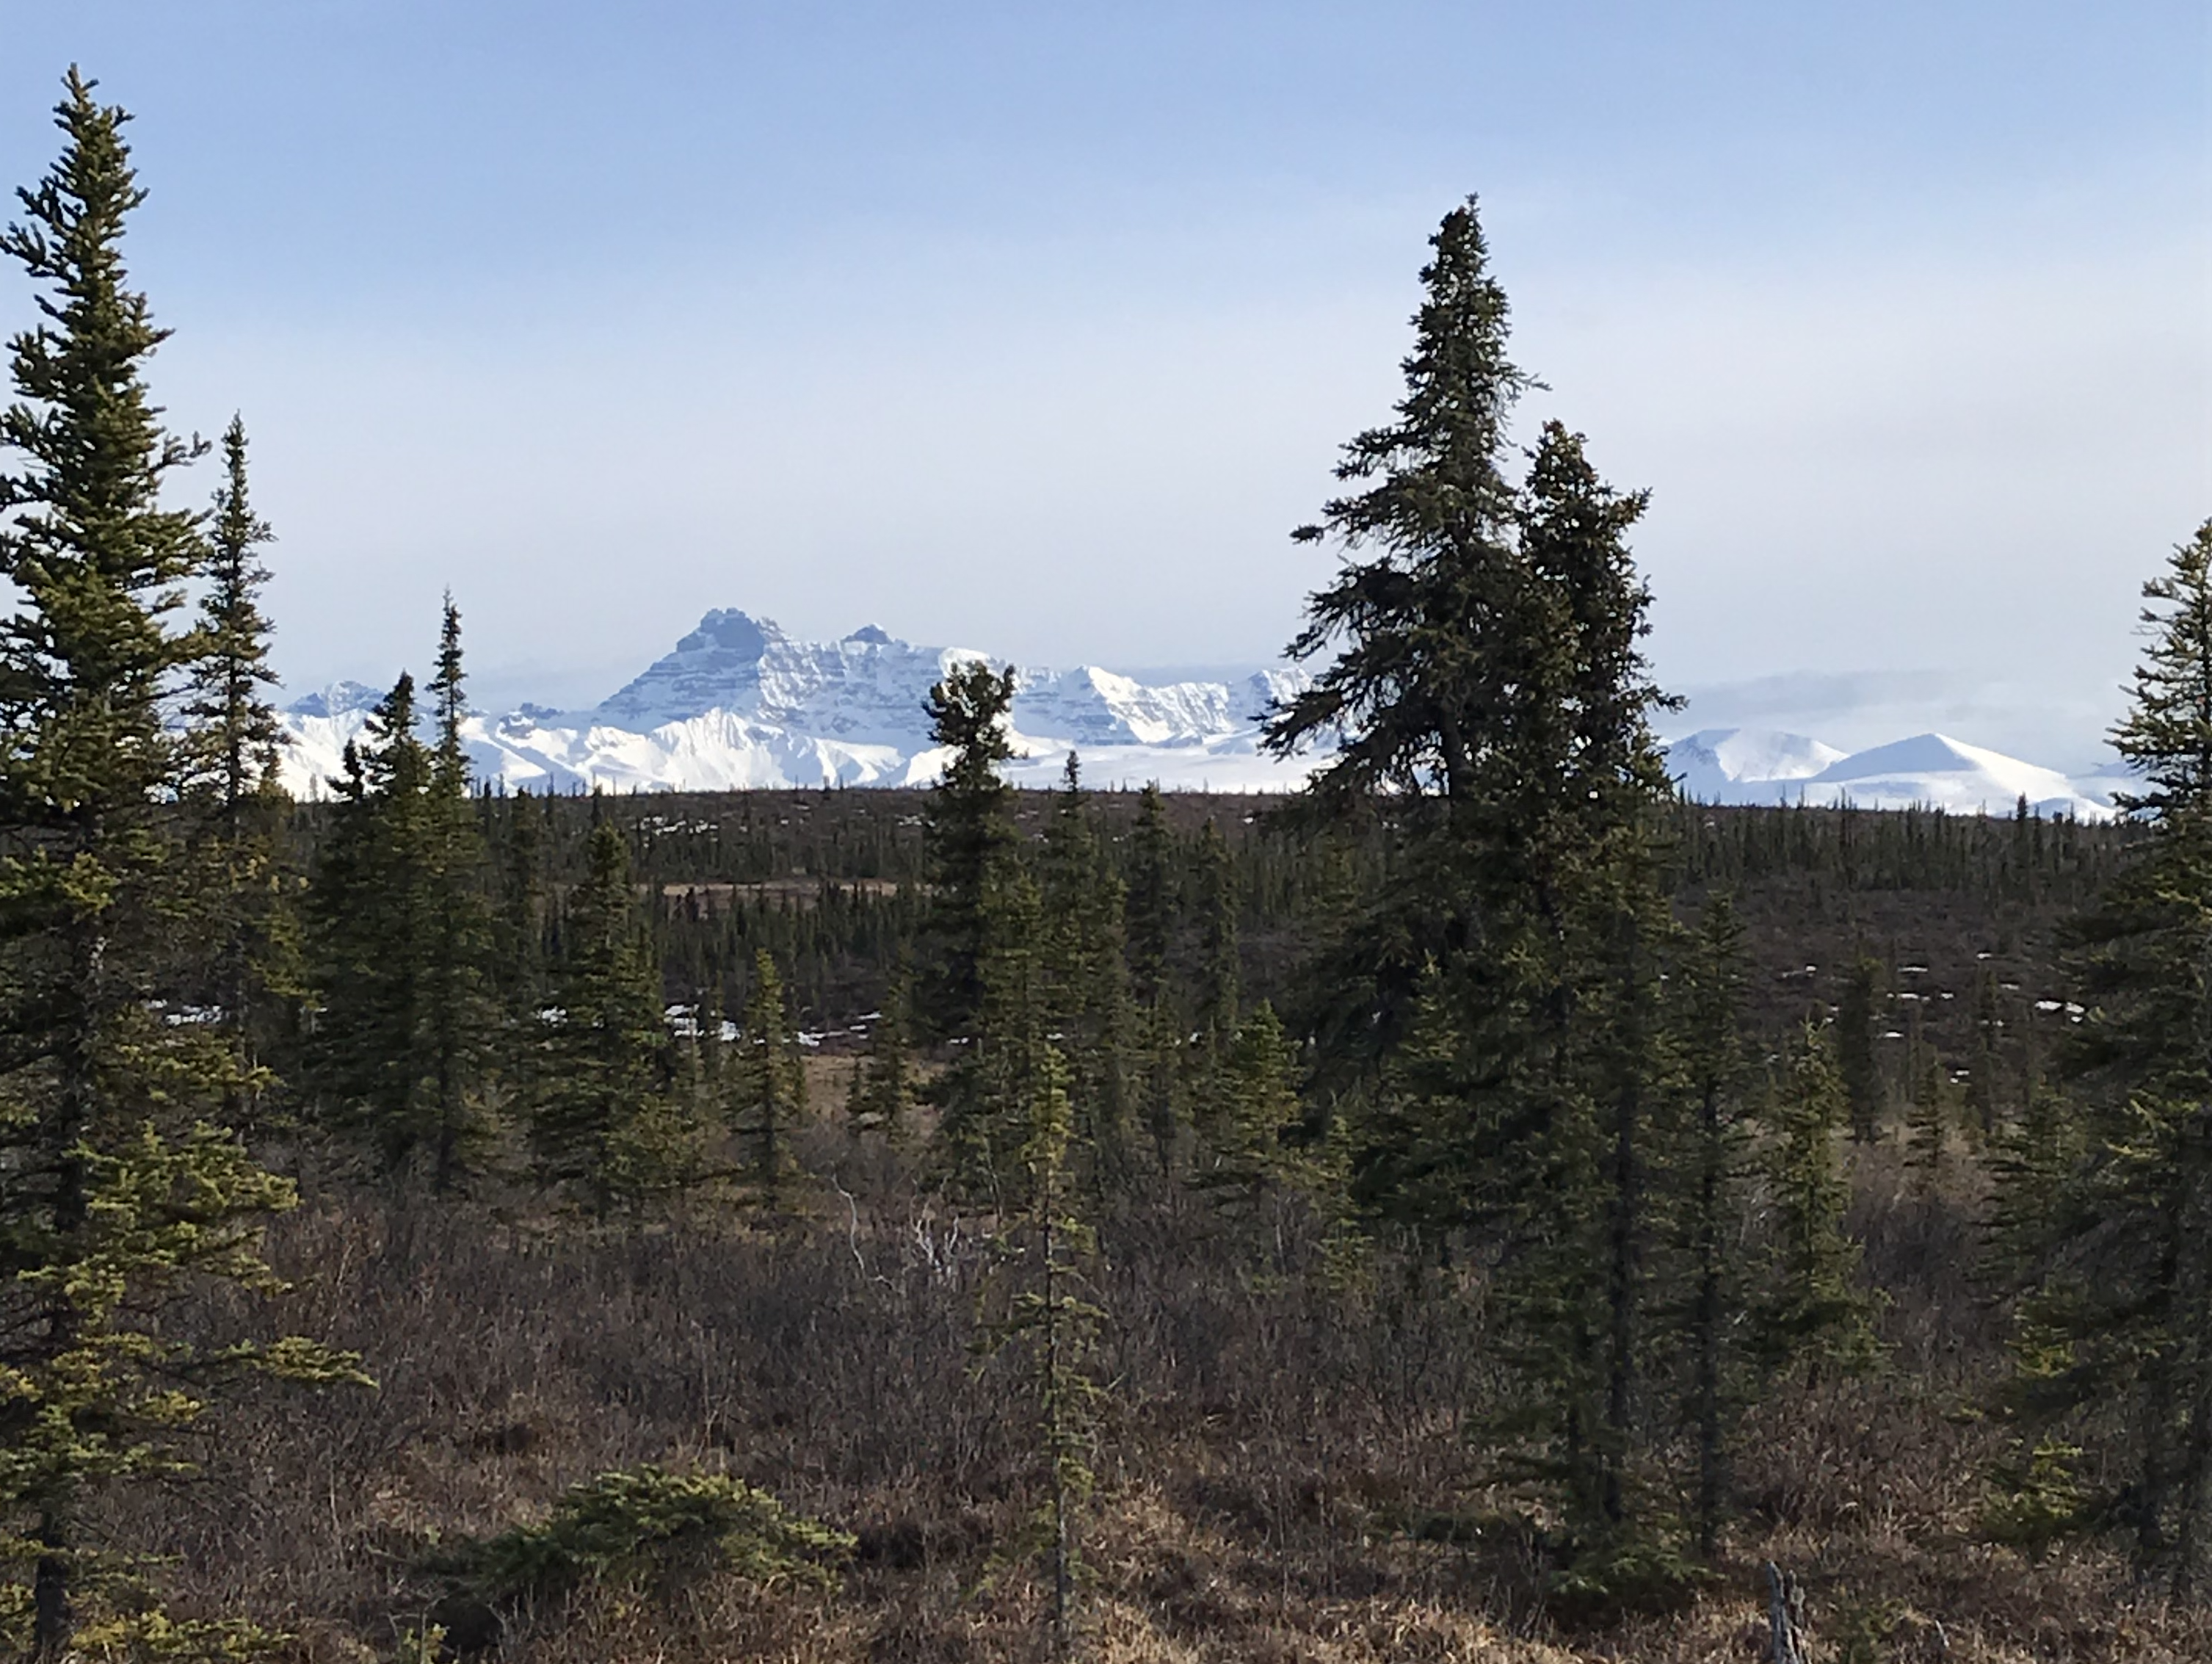 View of the mountains through the black spruce